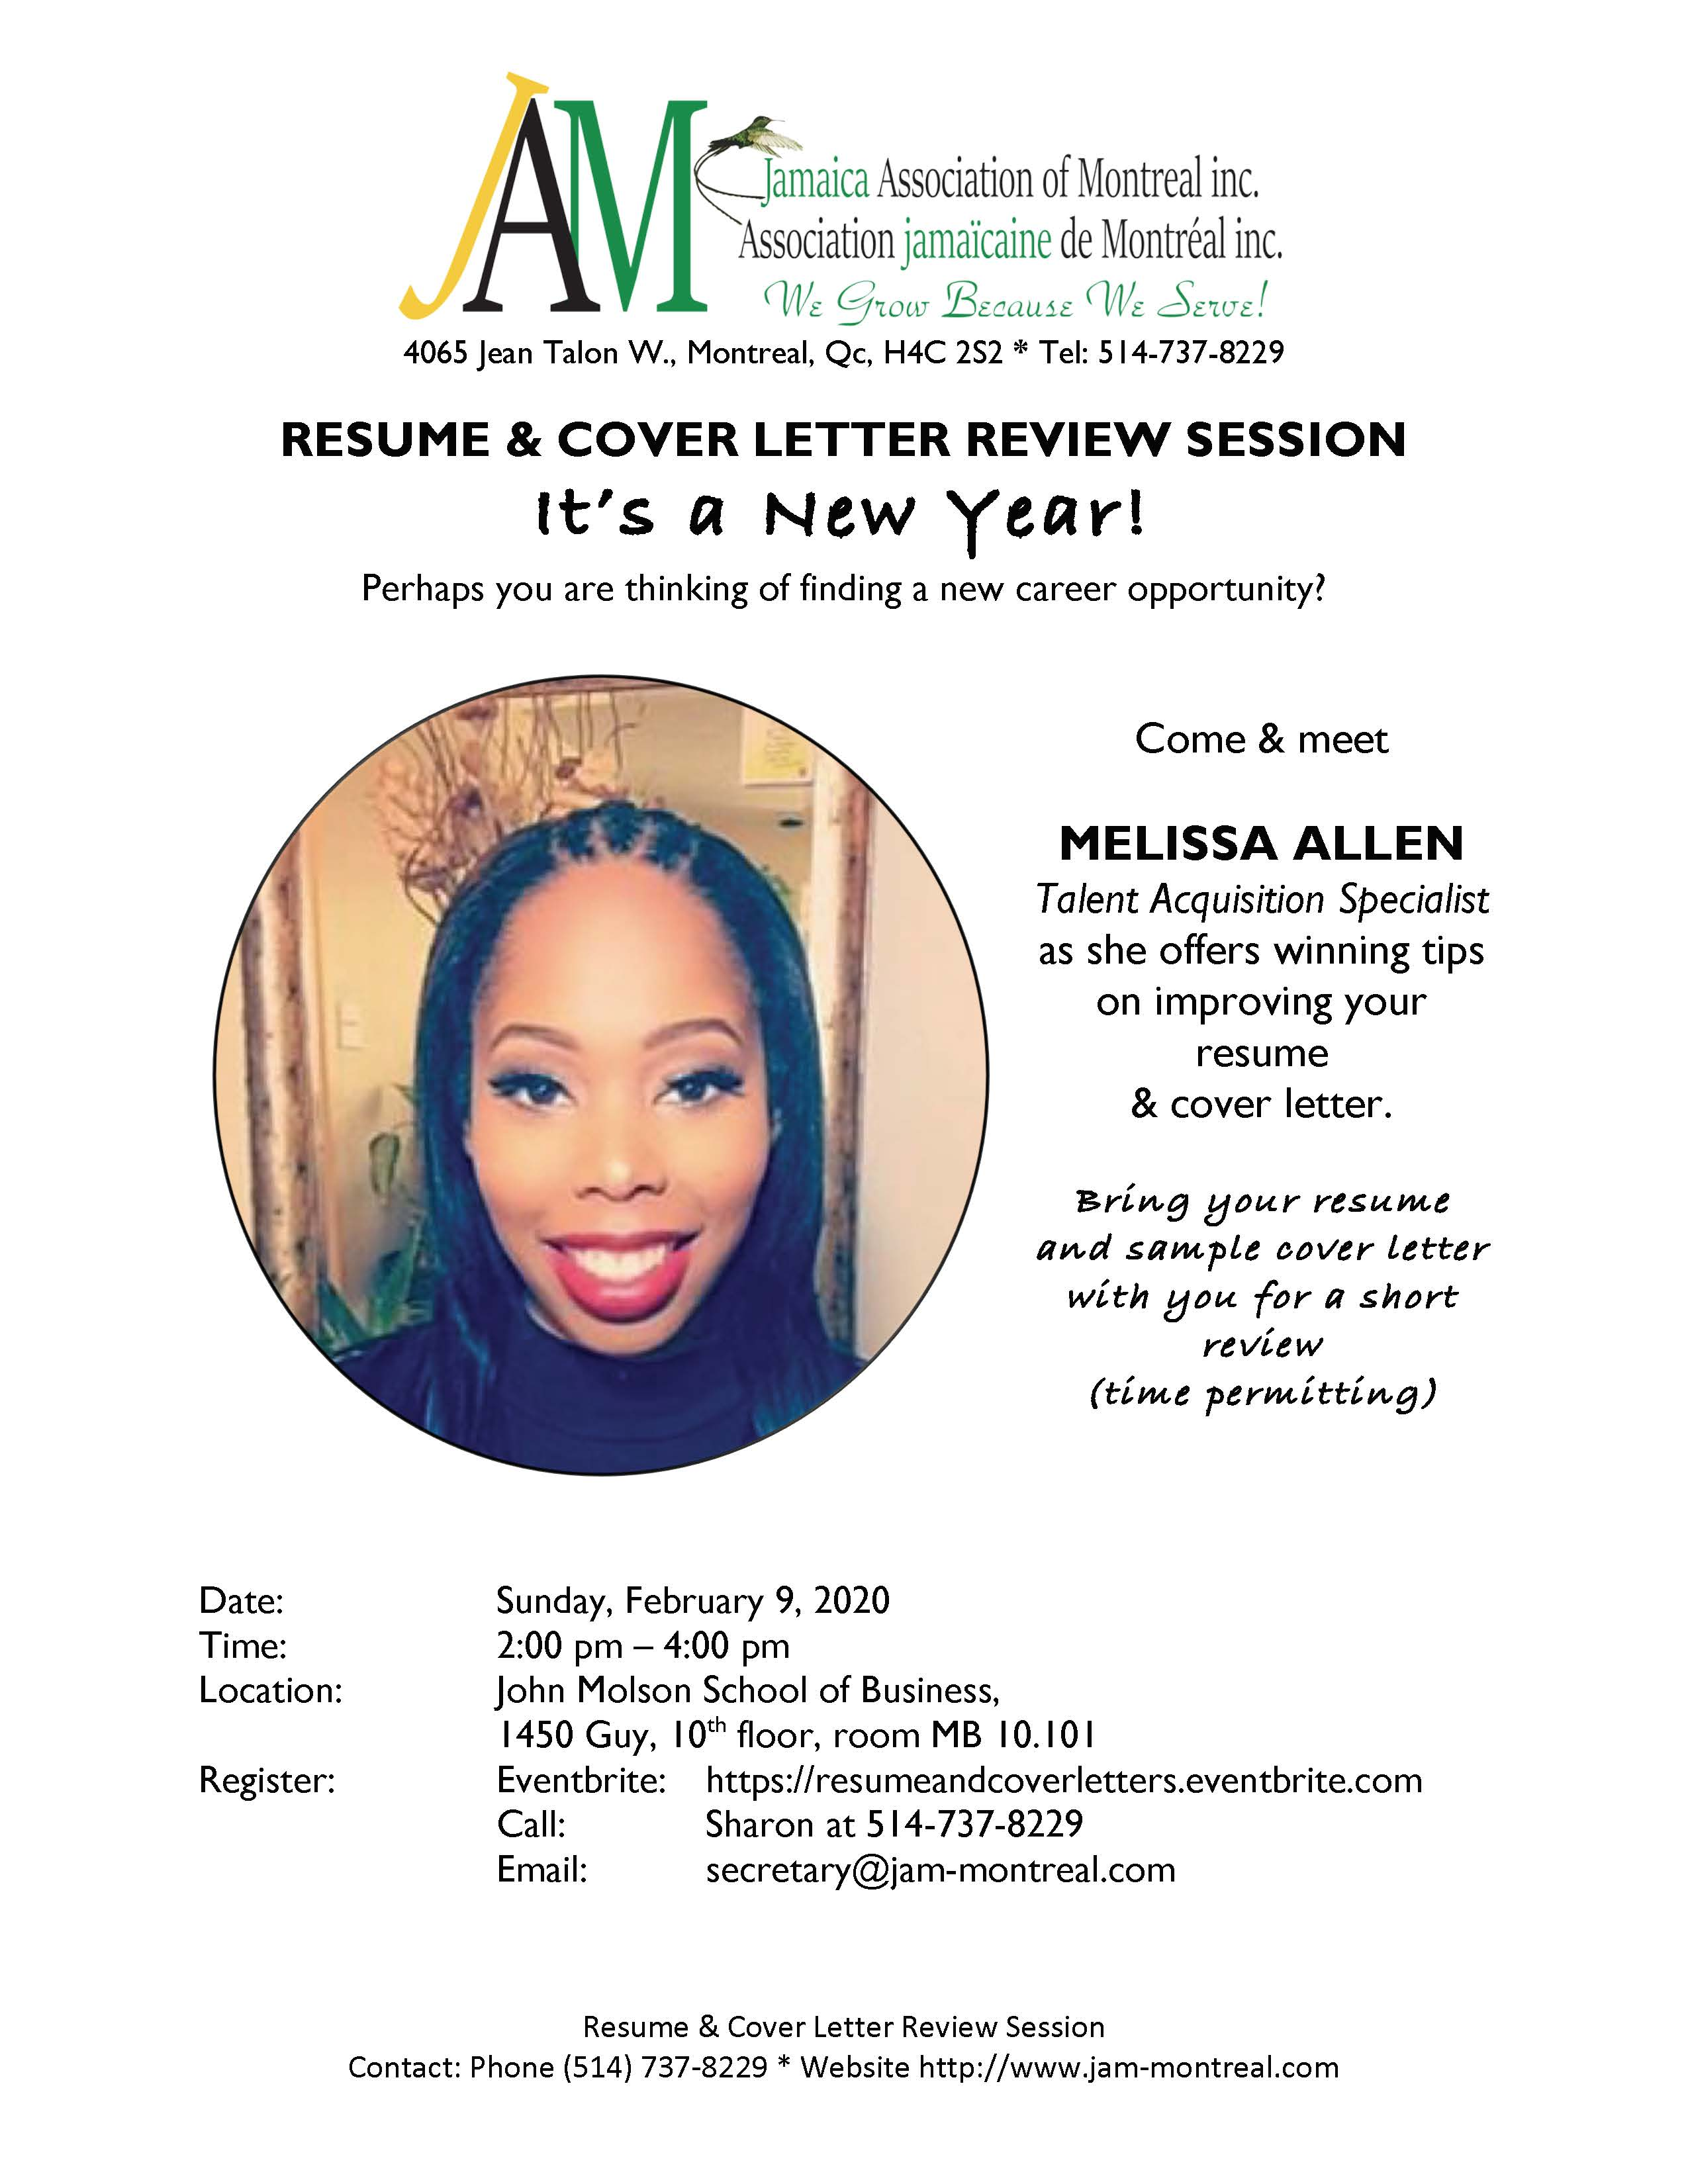 RESUME & COVER LETTER REVIEW SESSION